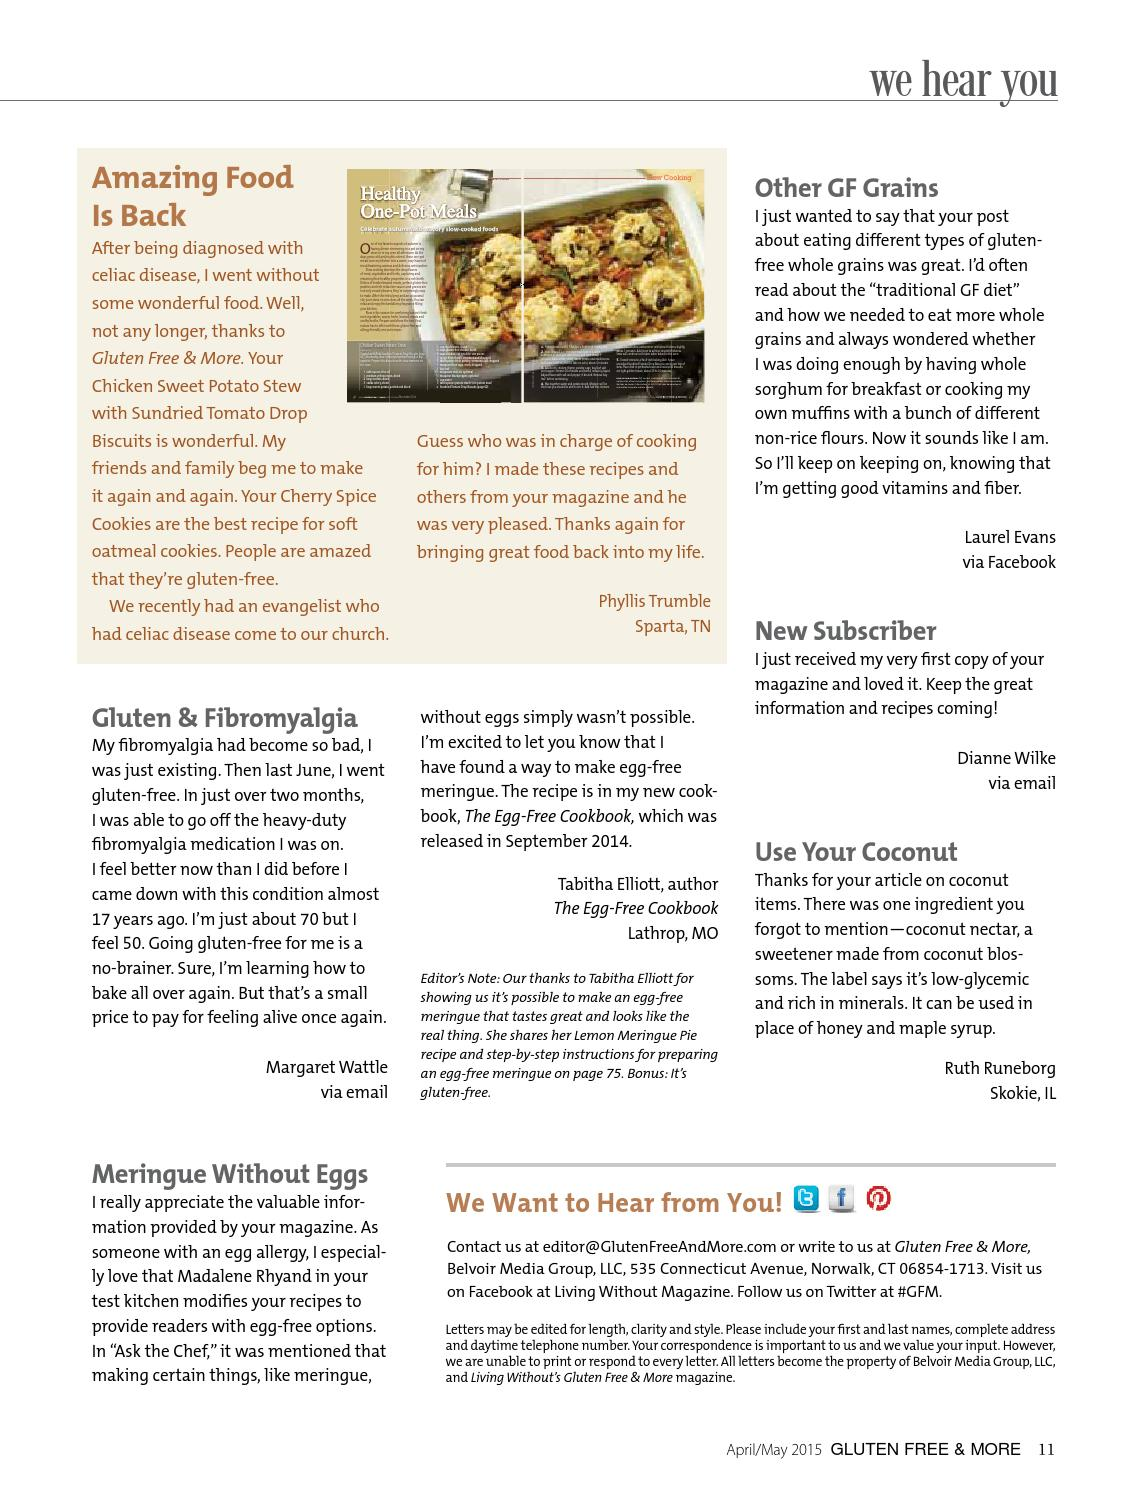 Gluten Free & More April/May 2015 Preview by Gluten Free & More - issuu